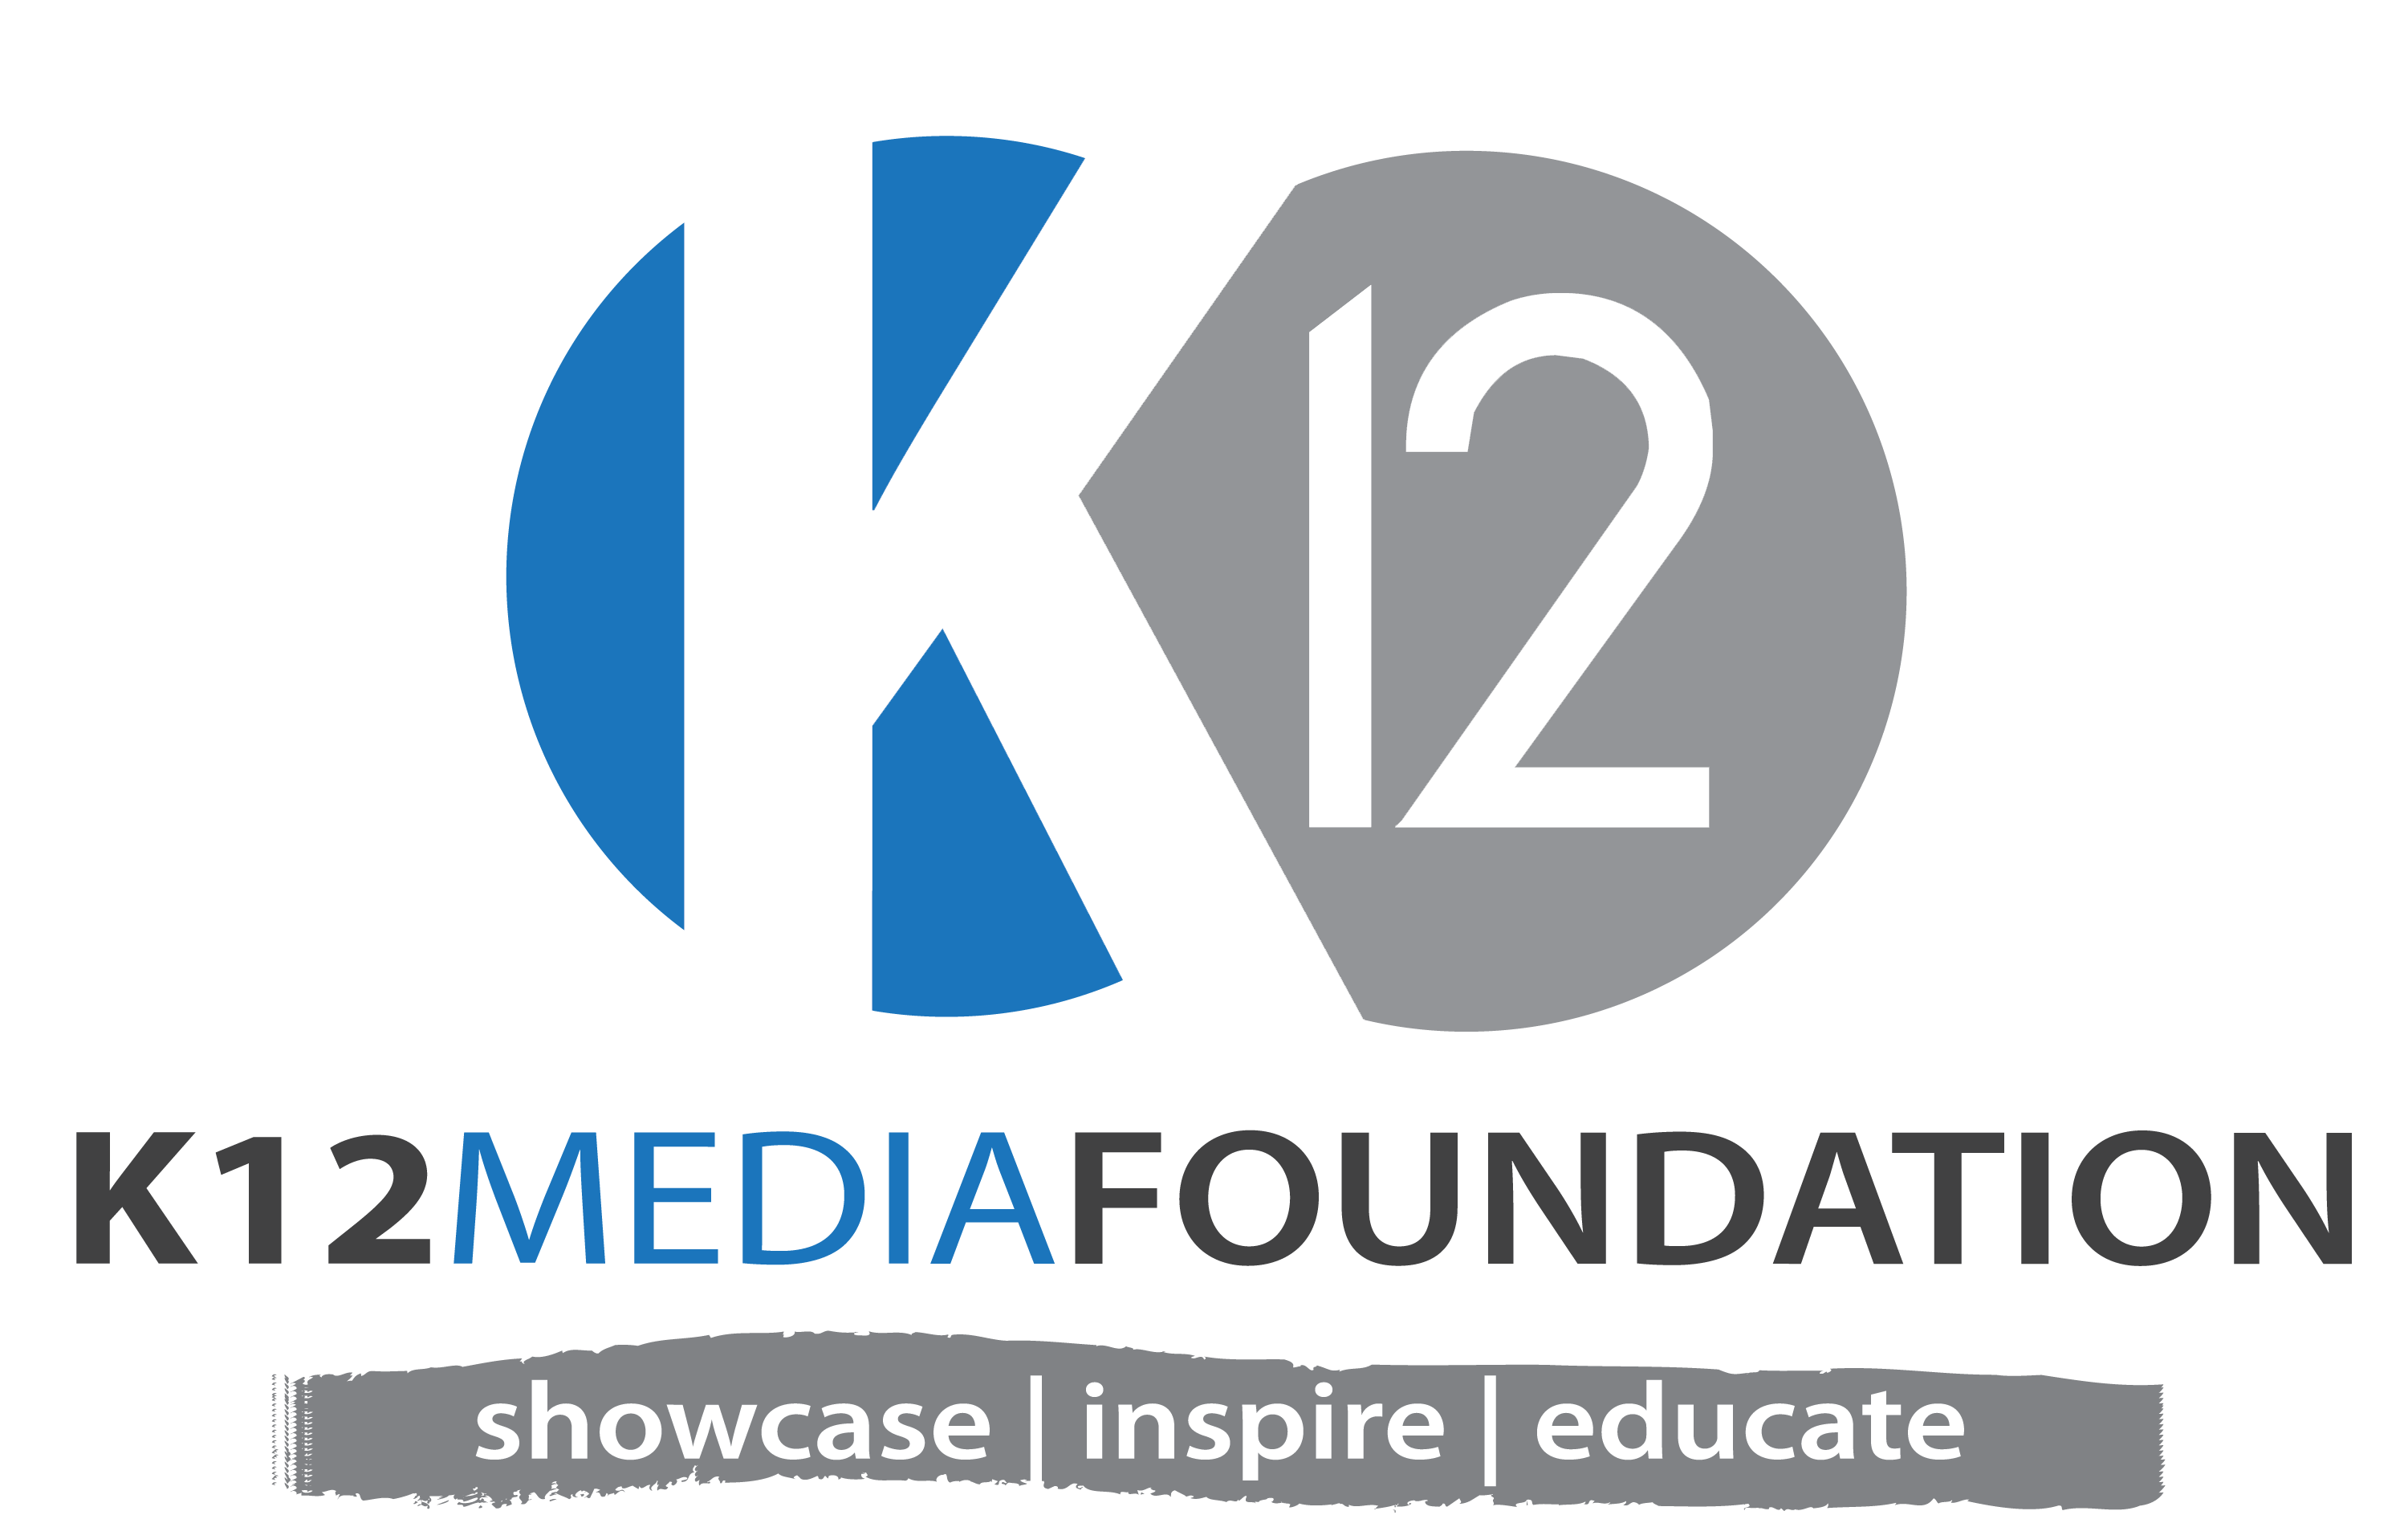 K12 Media Foundation